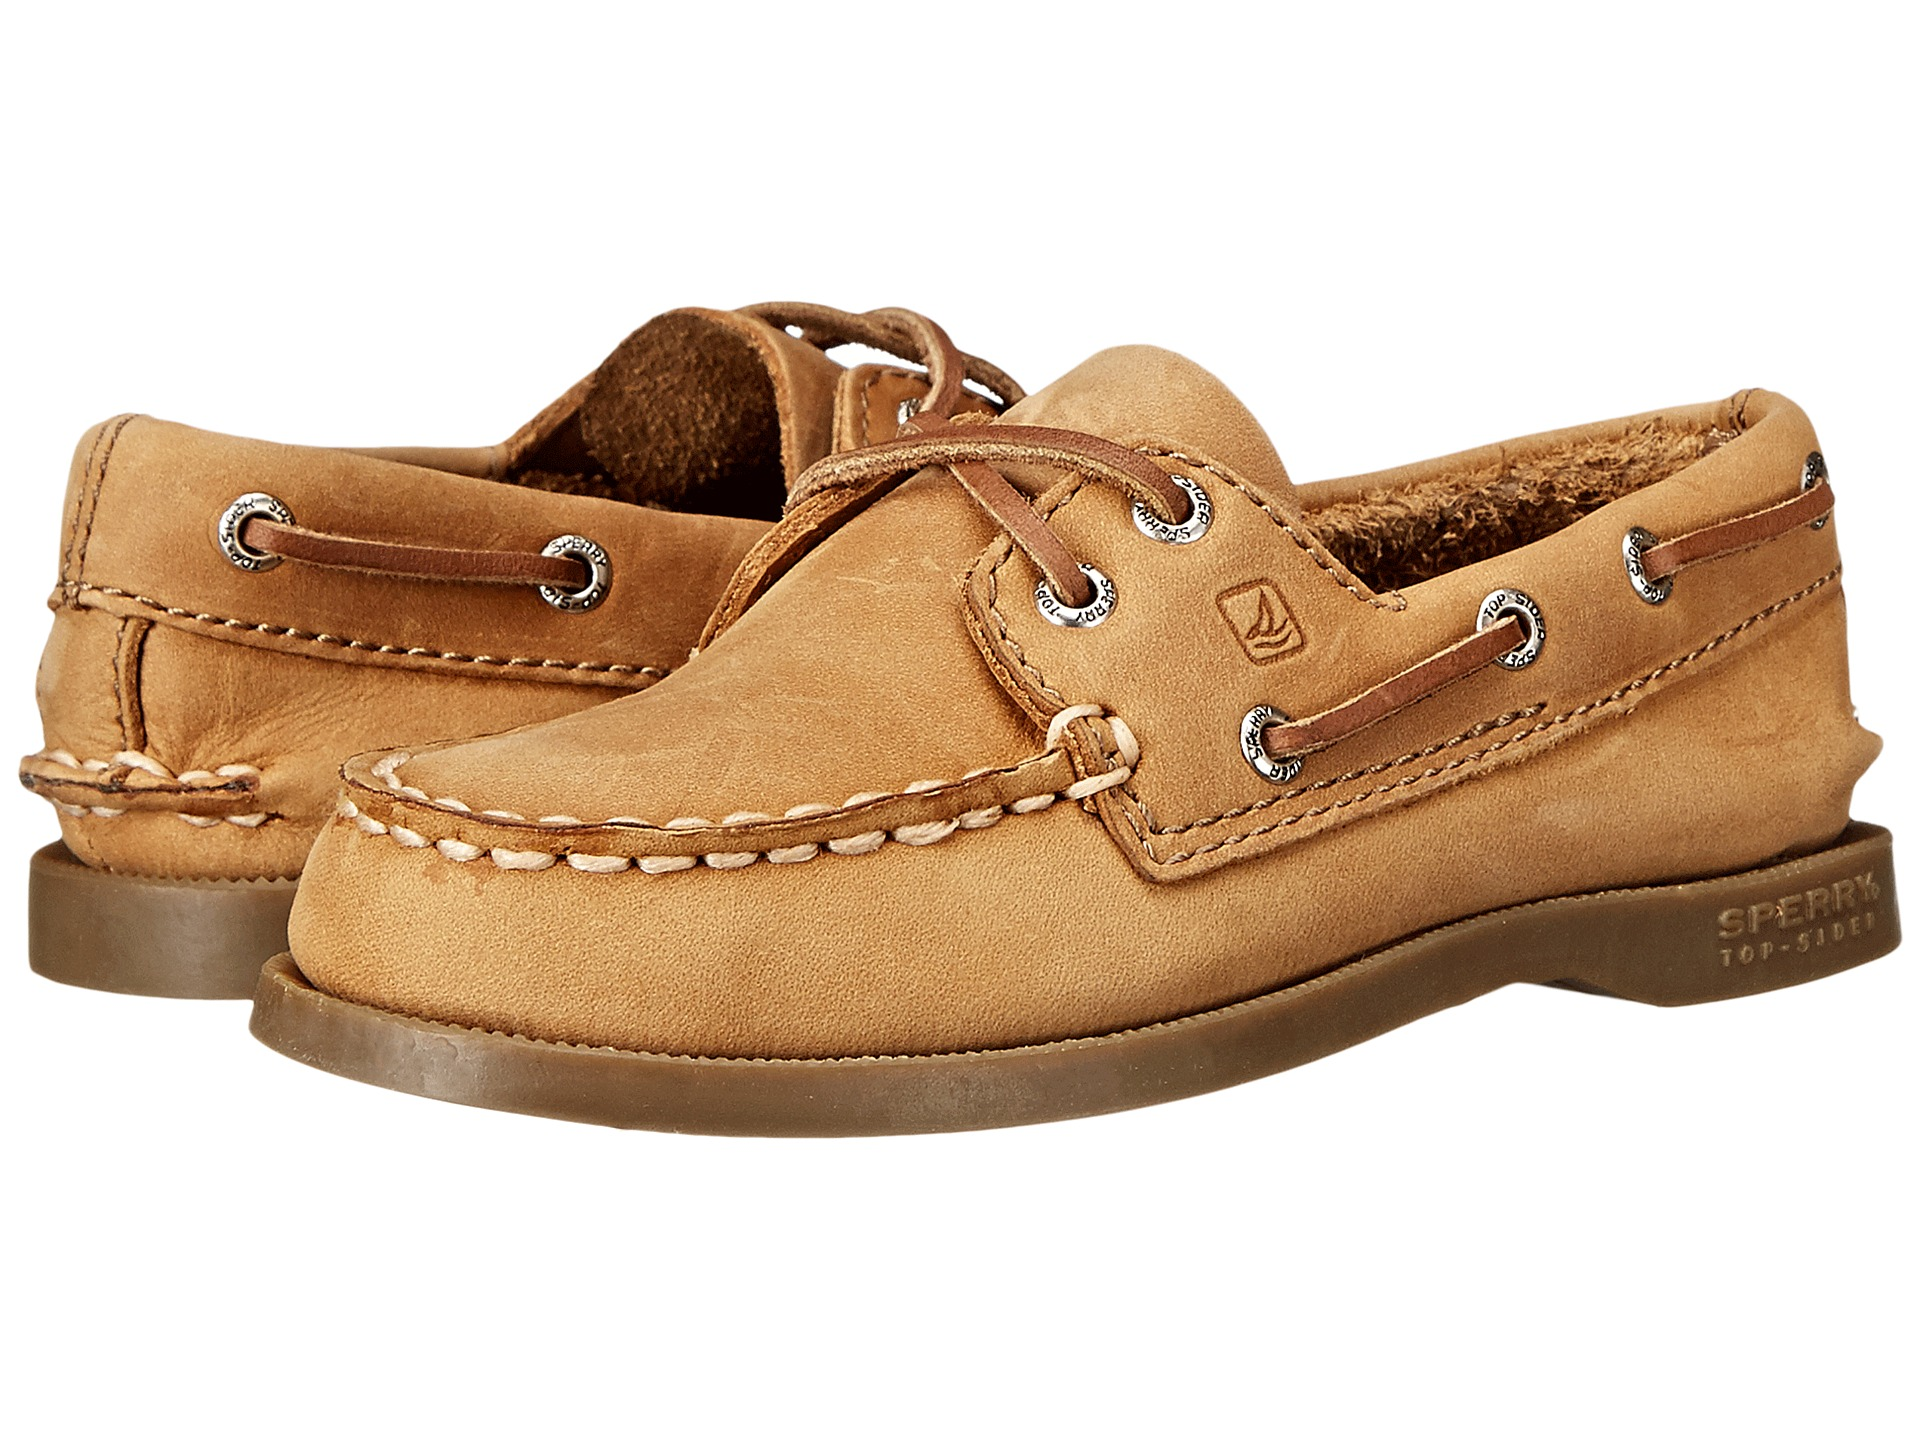 Shop our selection of Sperry shoes online. We carry a variety of Sperry boat shoes, sneakers, boots and socks for the whole family. FREE shipping available.